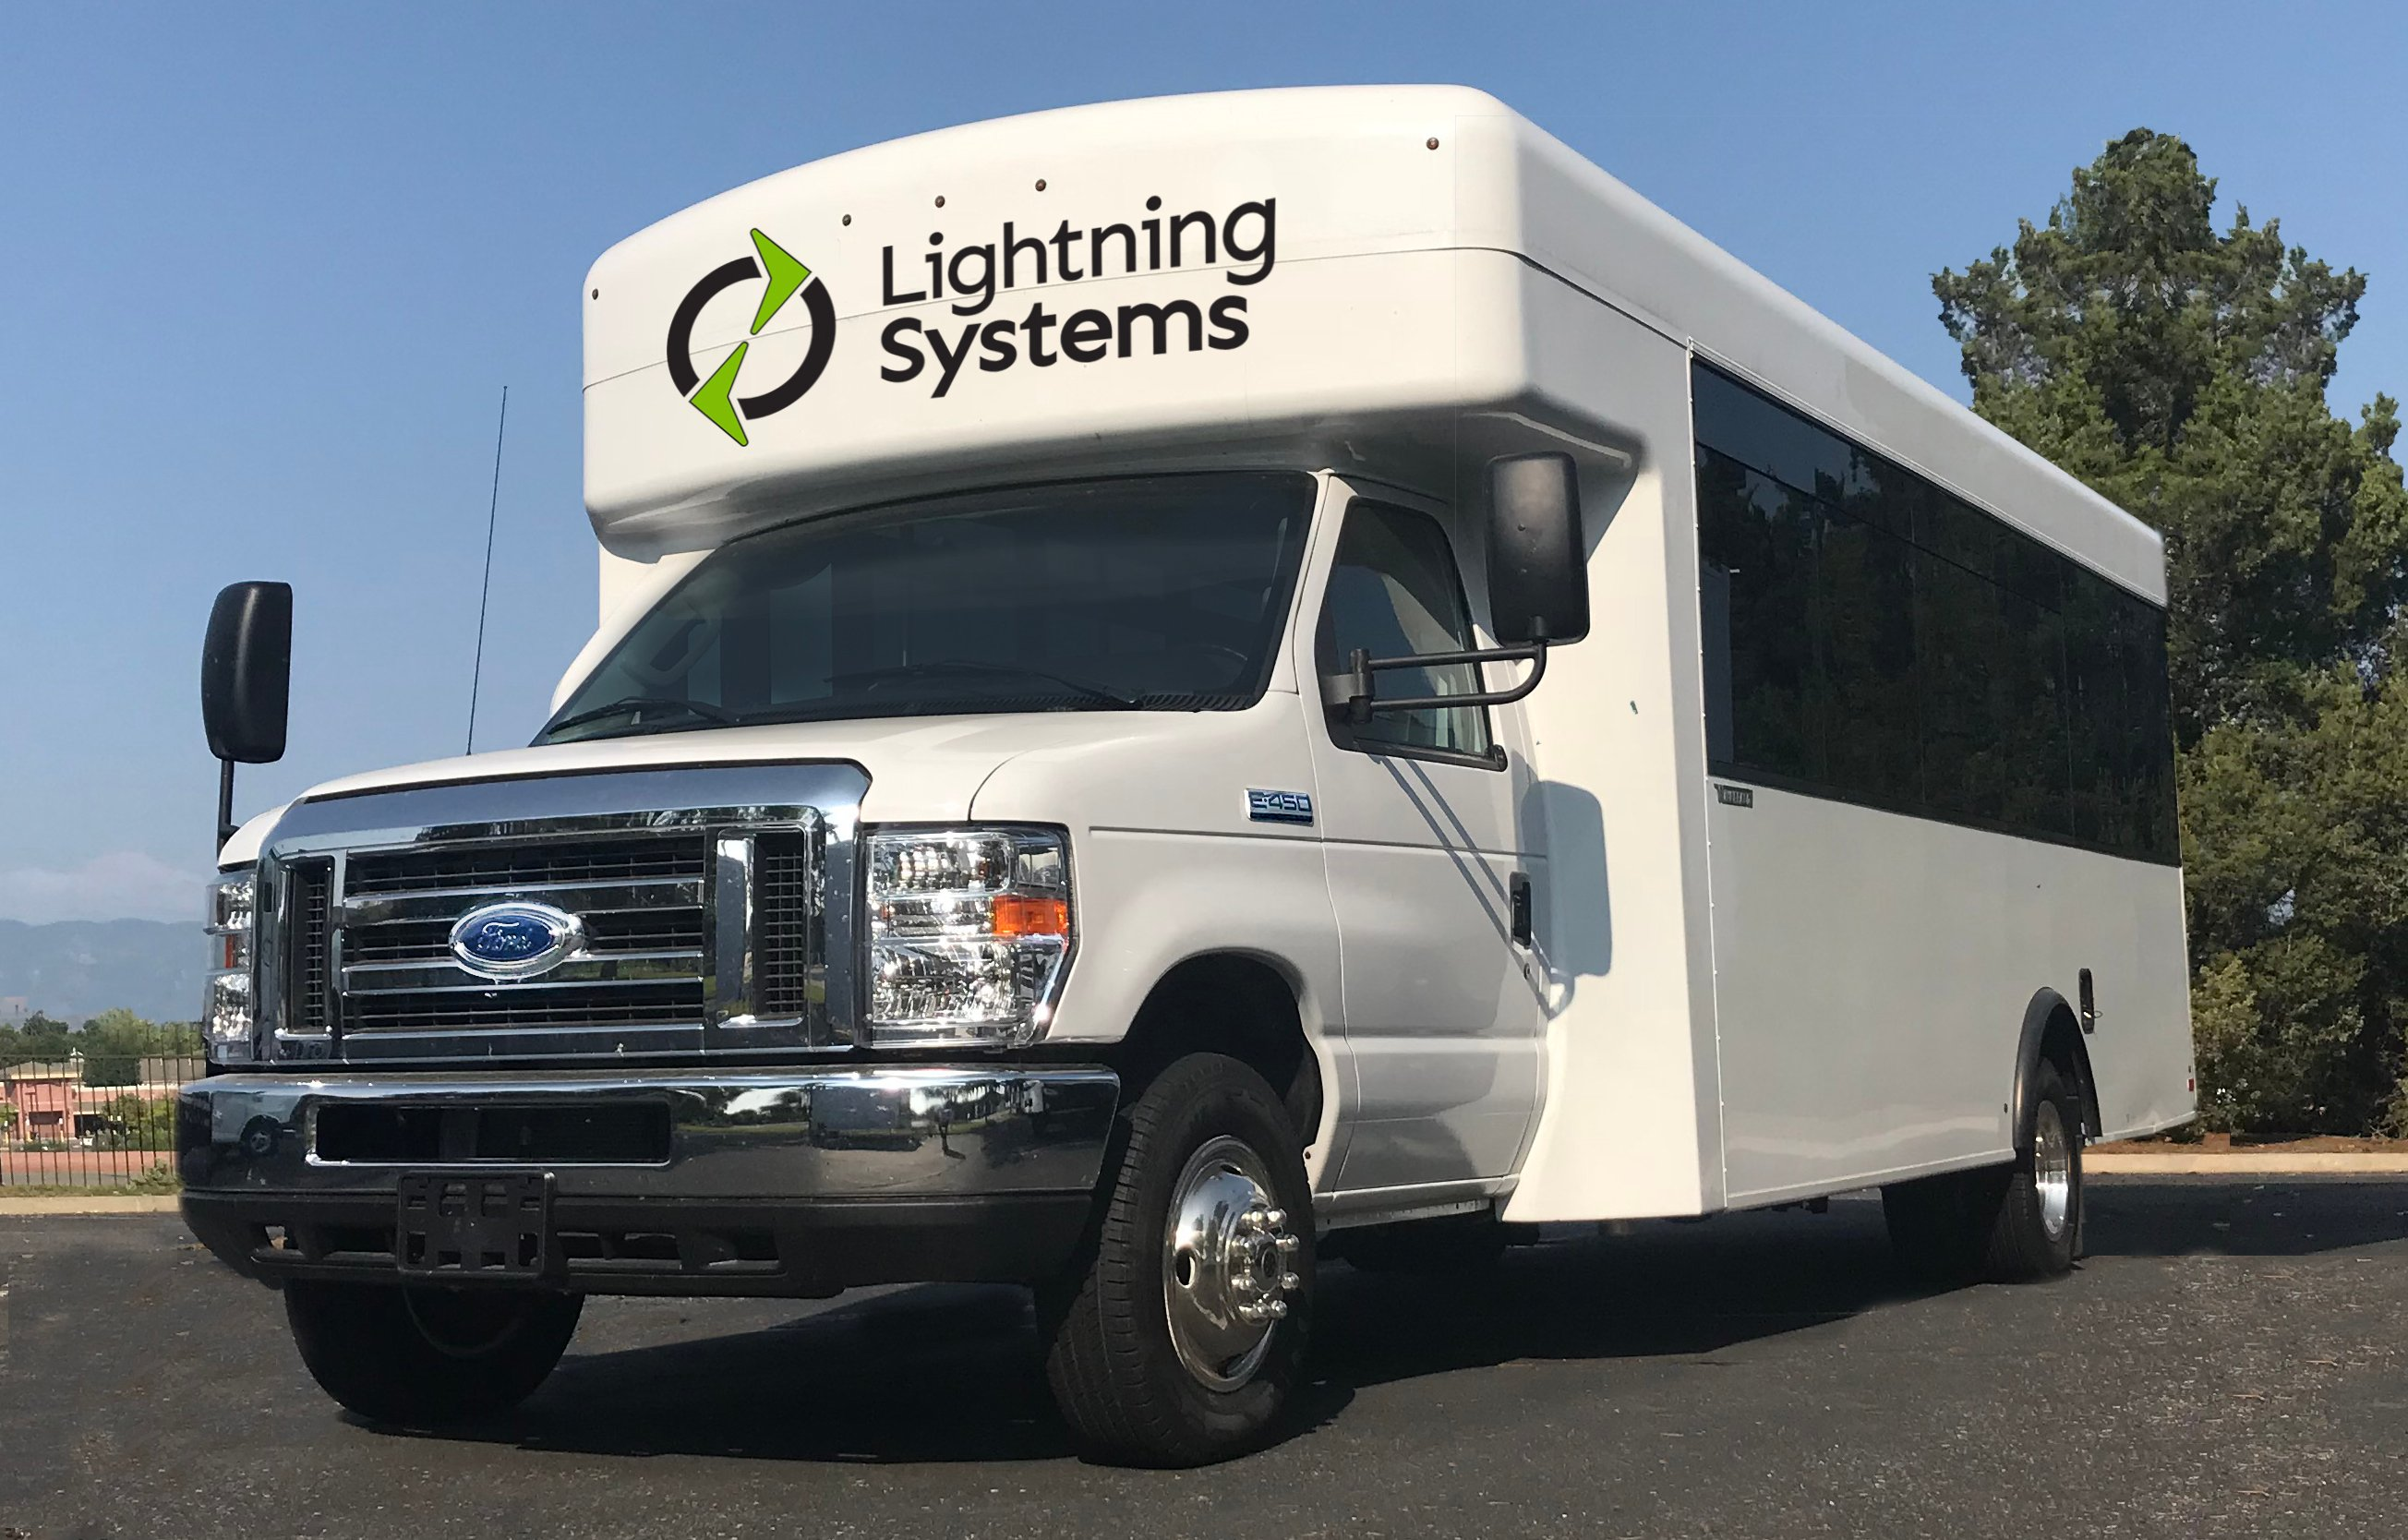 Lightning Systems debus all-electric bus, cutaways on Ford E450 chassis